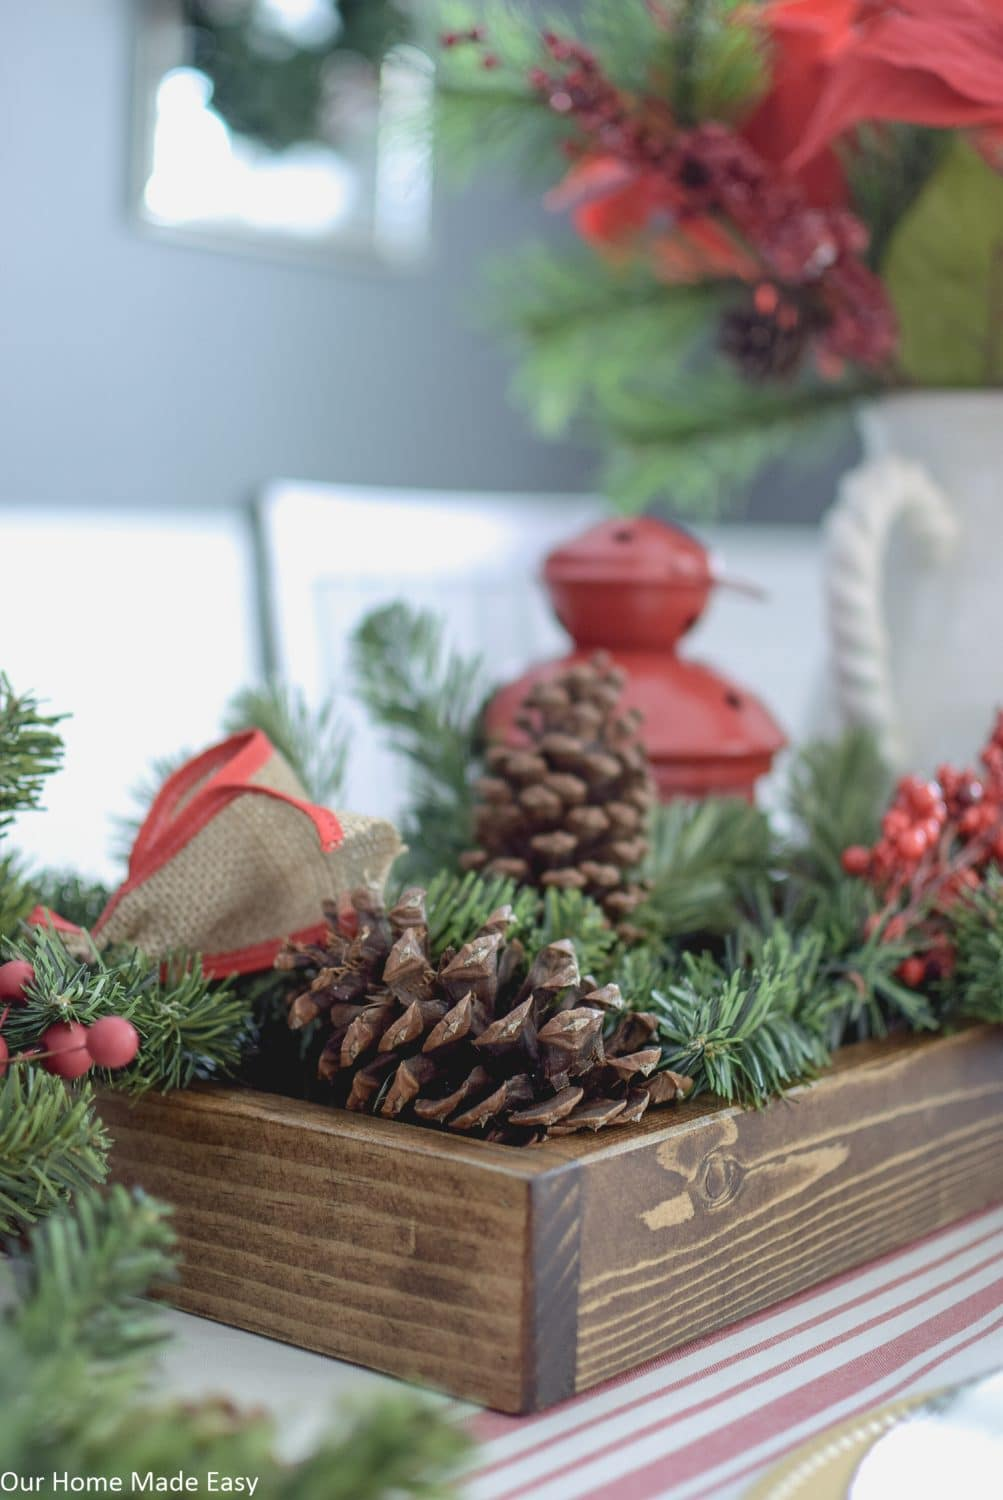 Kirklands Christmas.The 20 Best Places To Buy Christmas Decorations Our Home